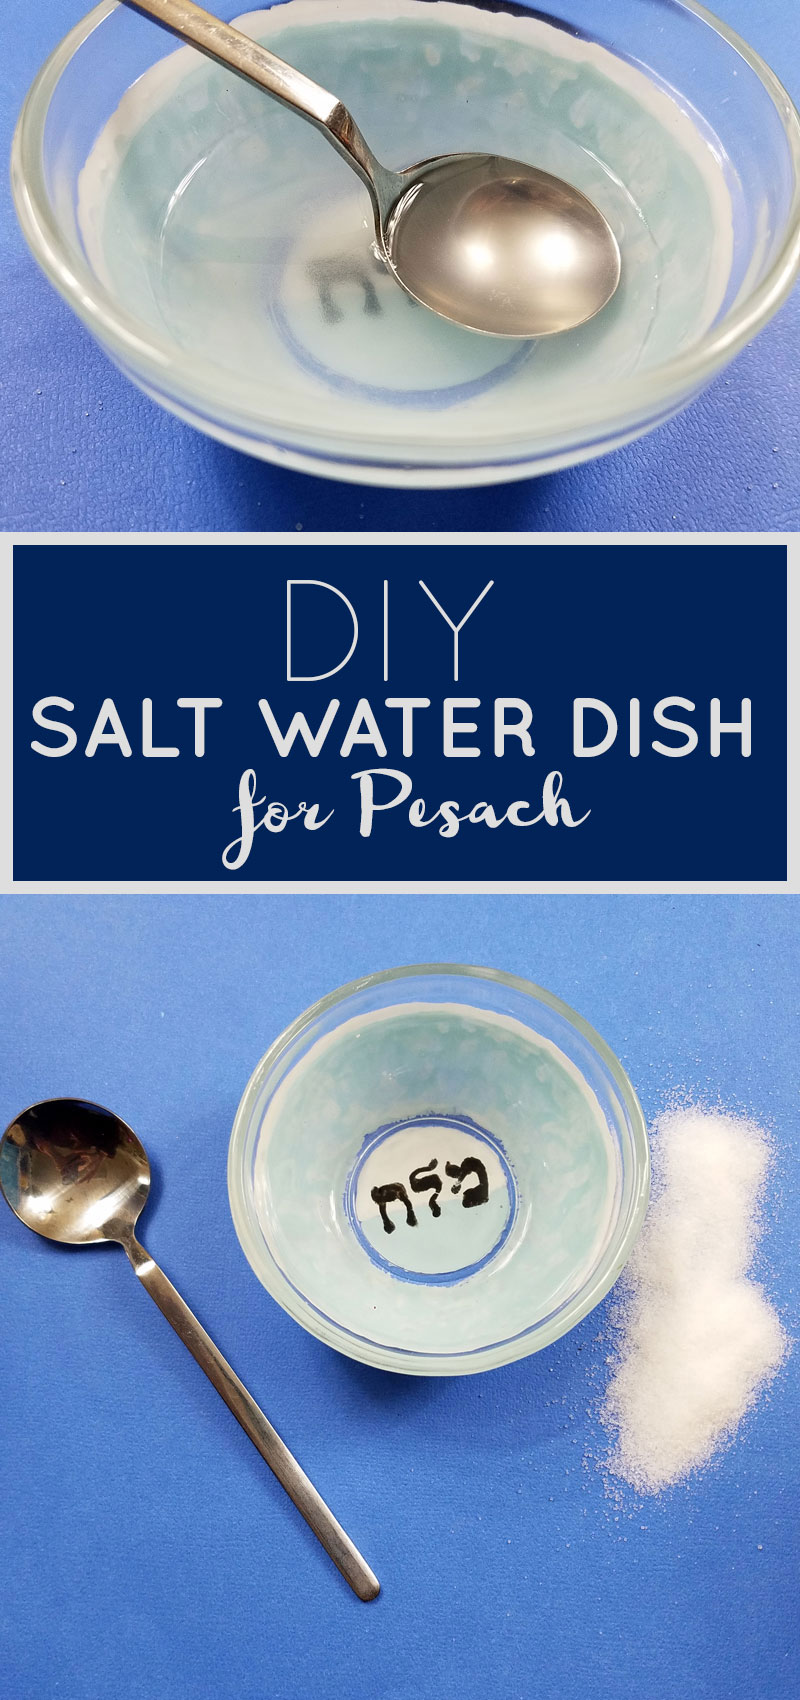 Click to learn how to make this beautiful Passover salt water dish yourself! This fun Pesach craft for kids or grown-ups is a quick and easy idea to enhance your seder table.